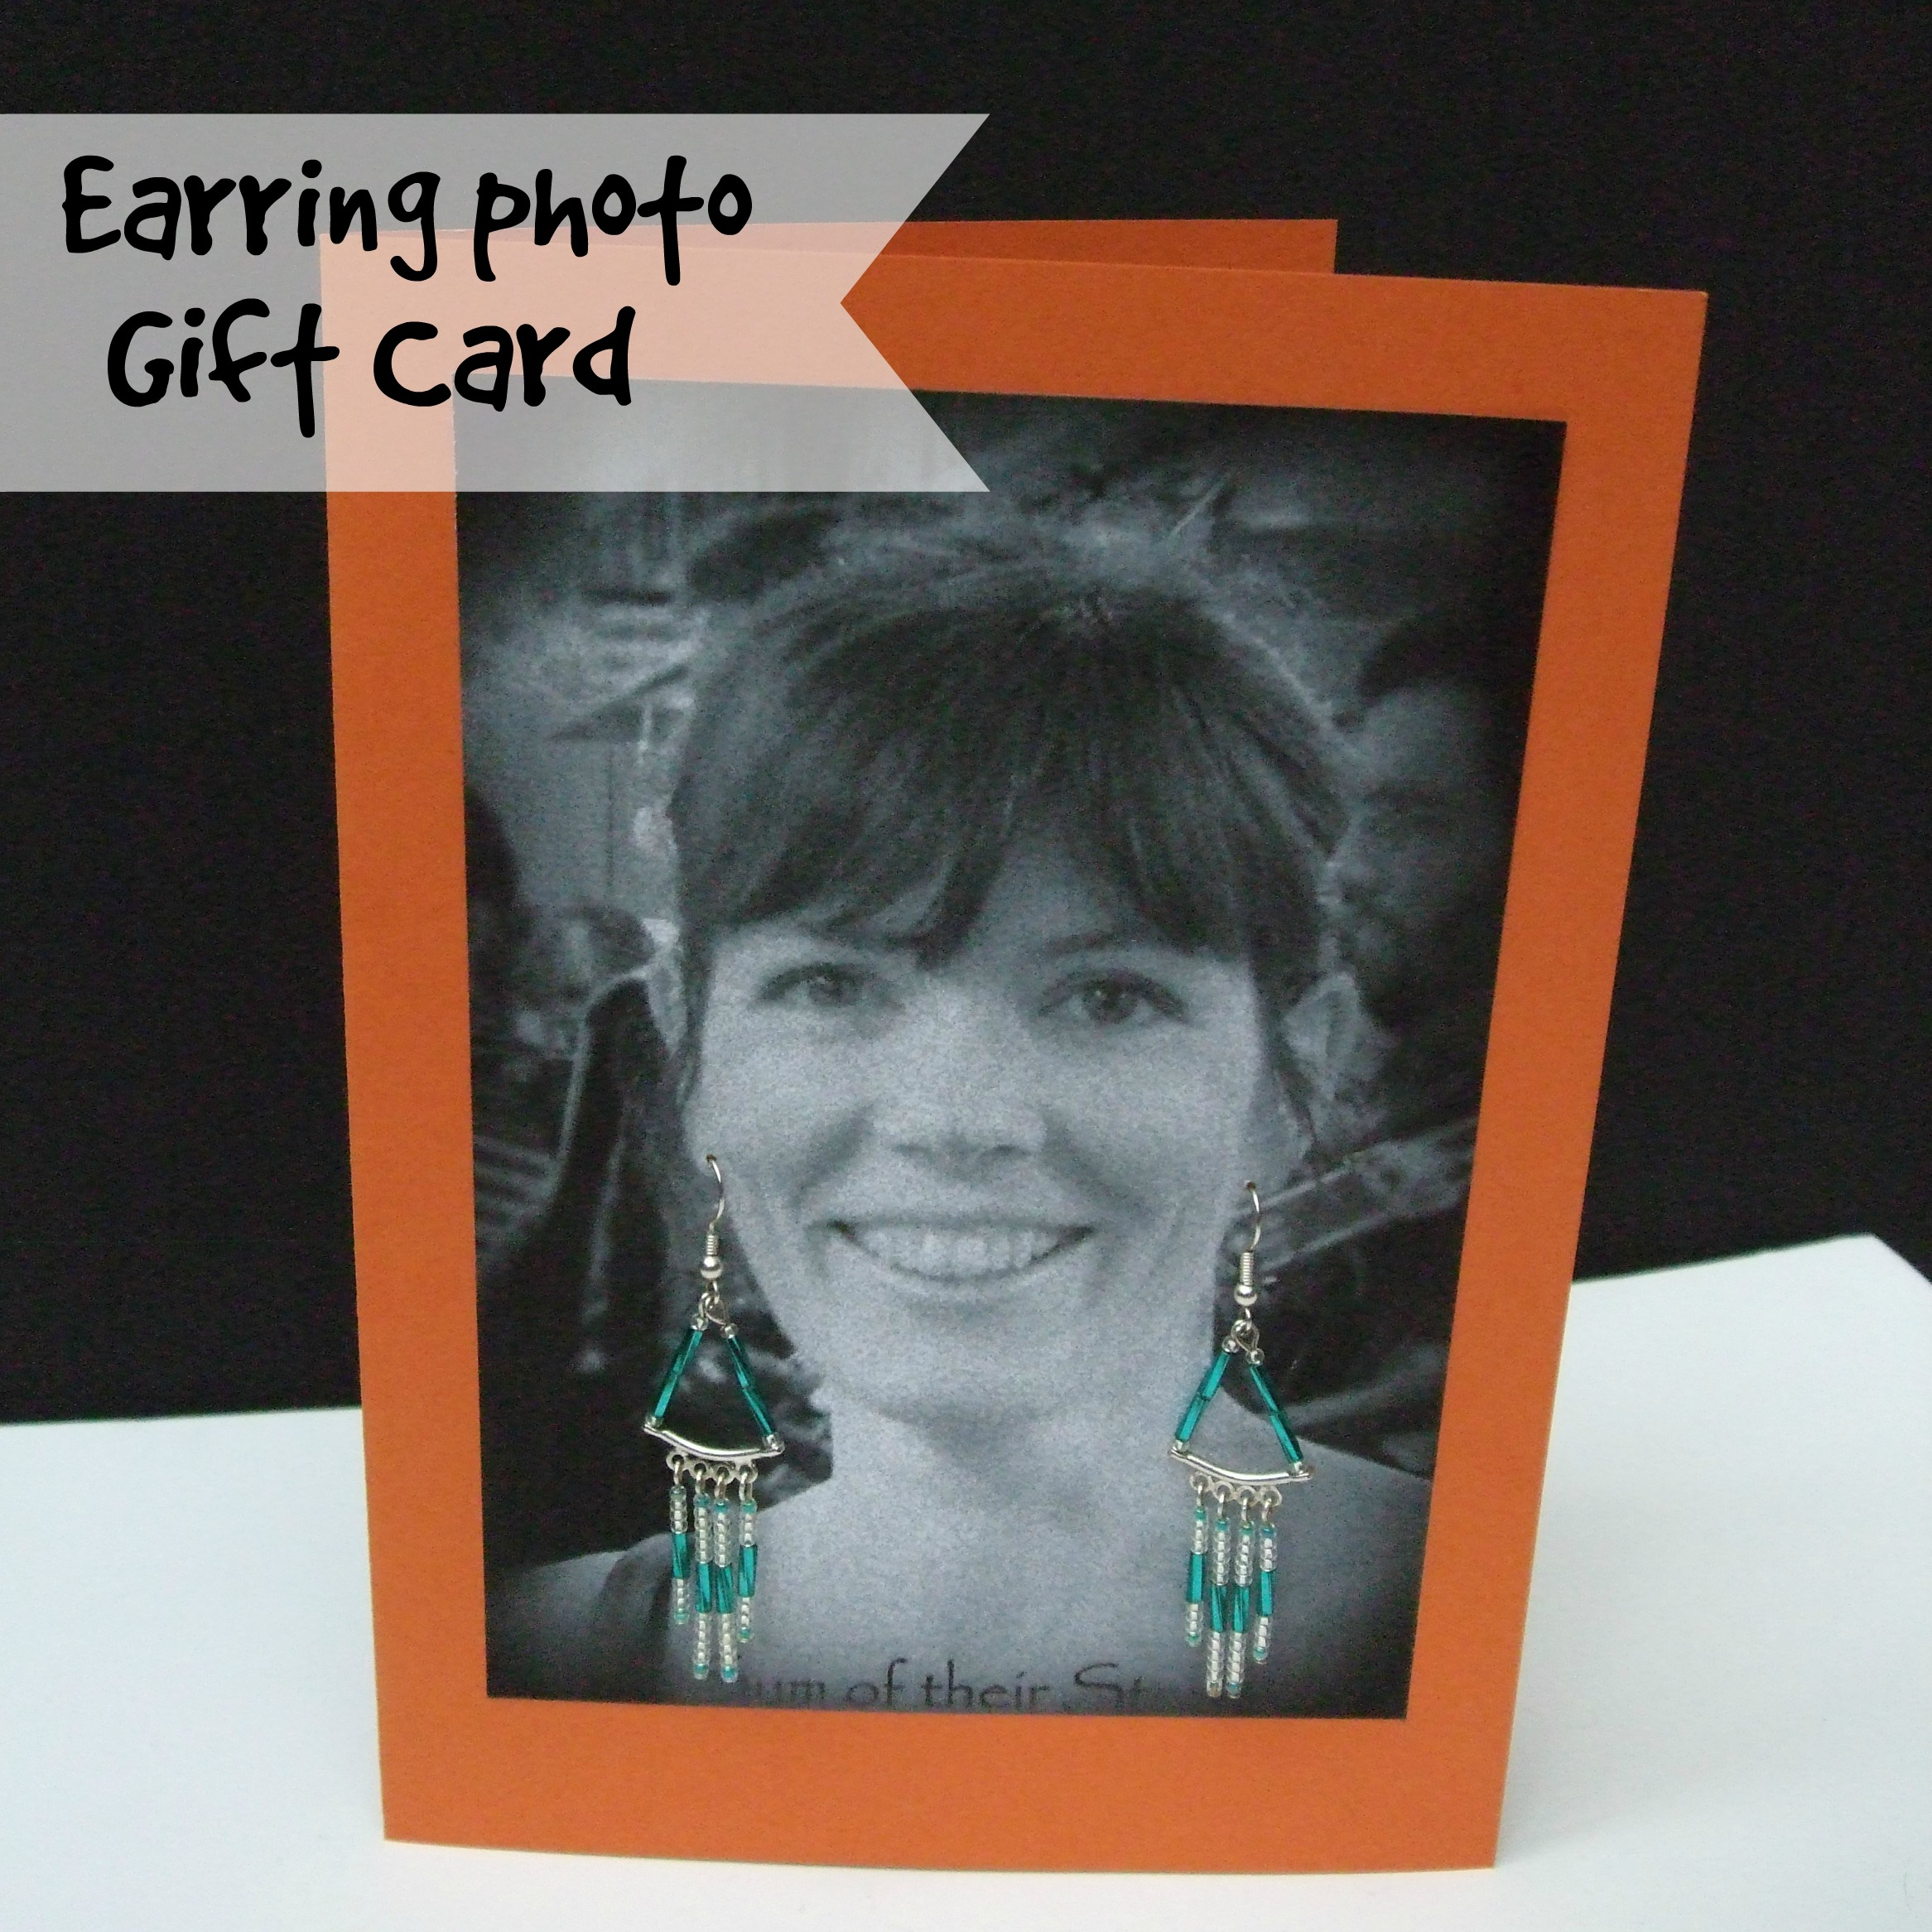 earring photo gift card 2.jpg